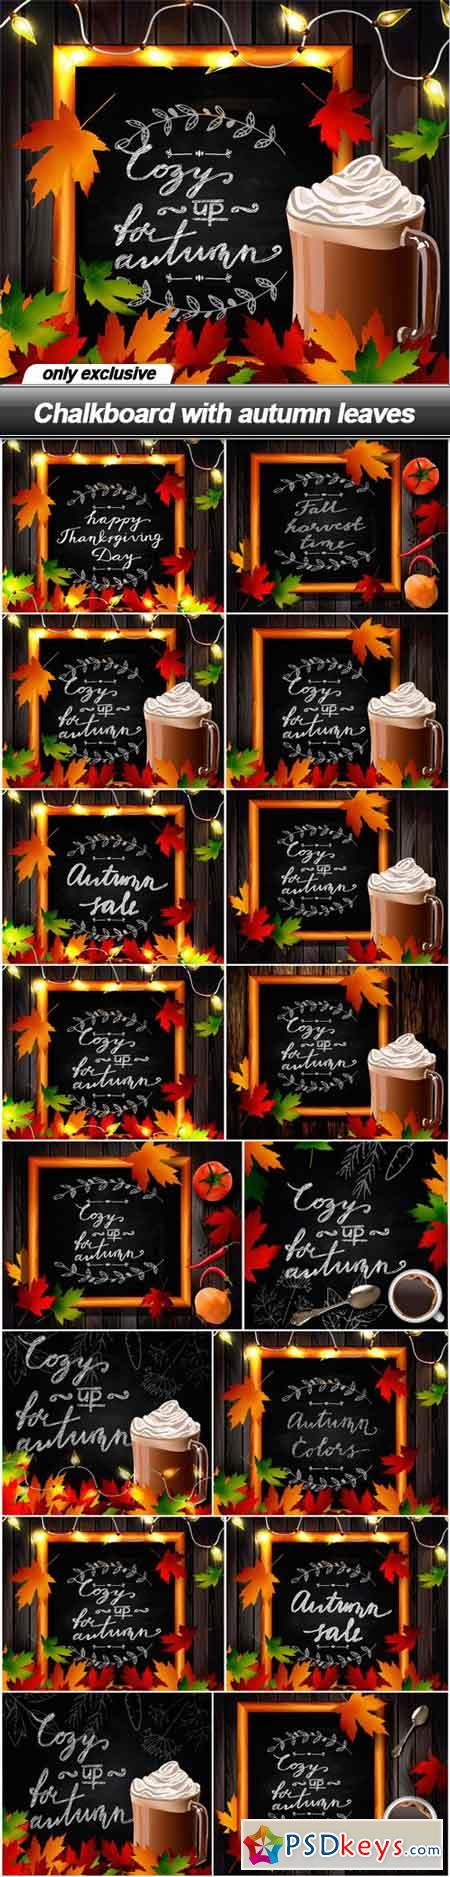 Chalkboard with autumn leaves - 16 EPS